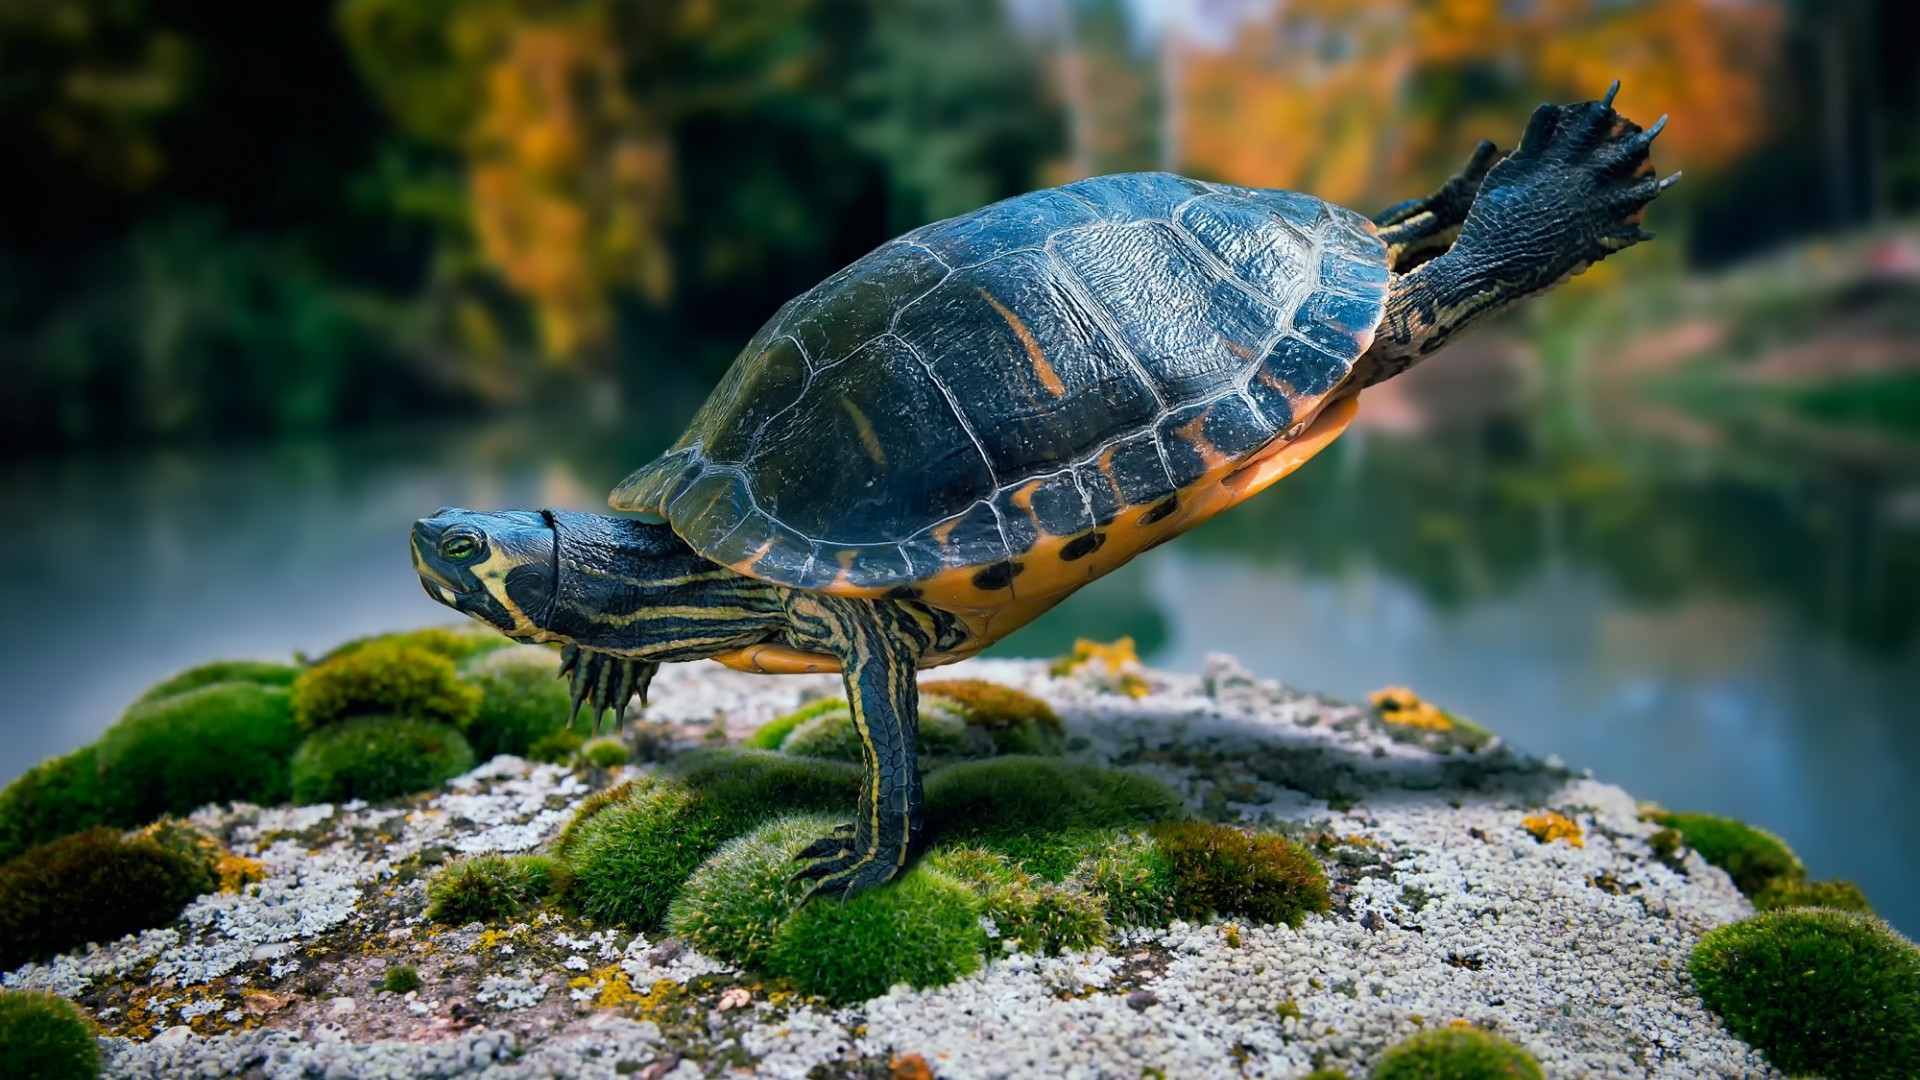 Turtle desktop wallpaper hd